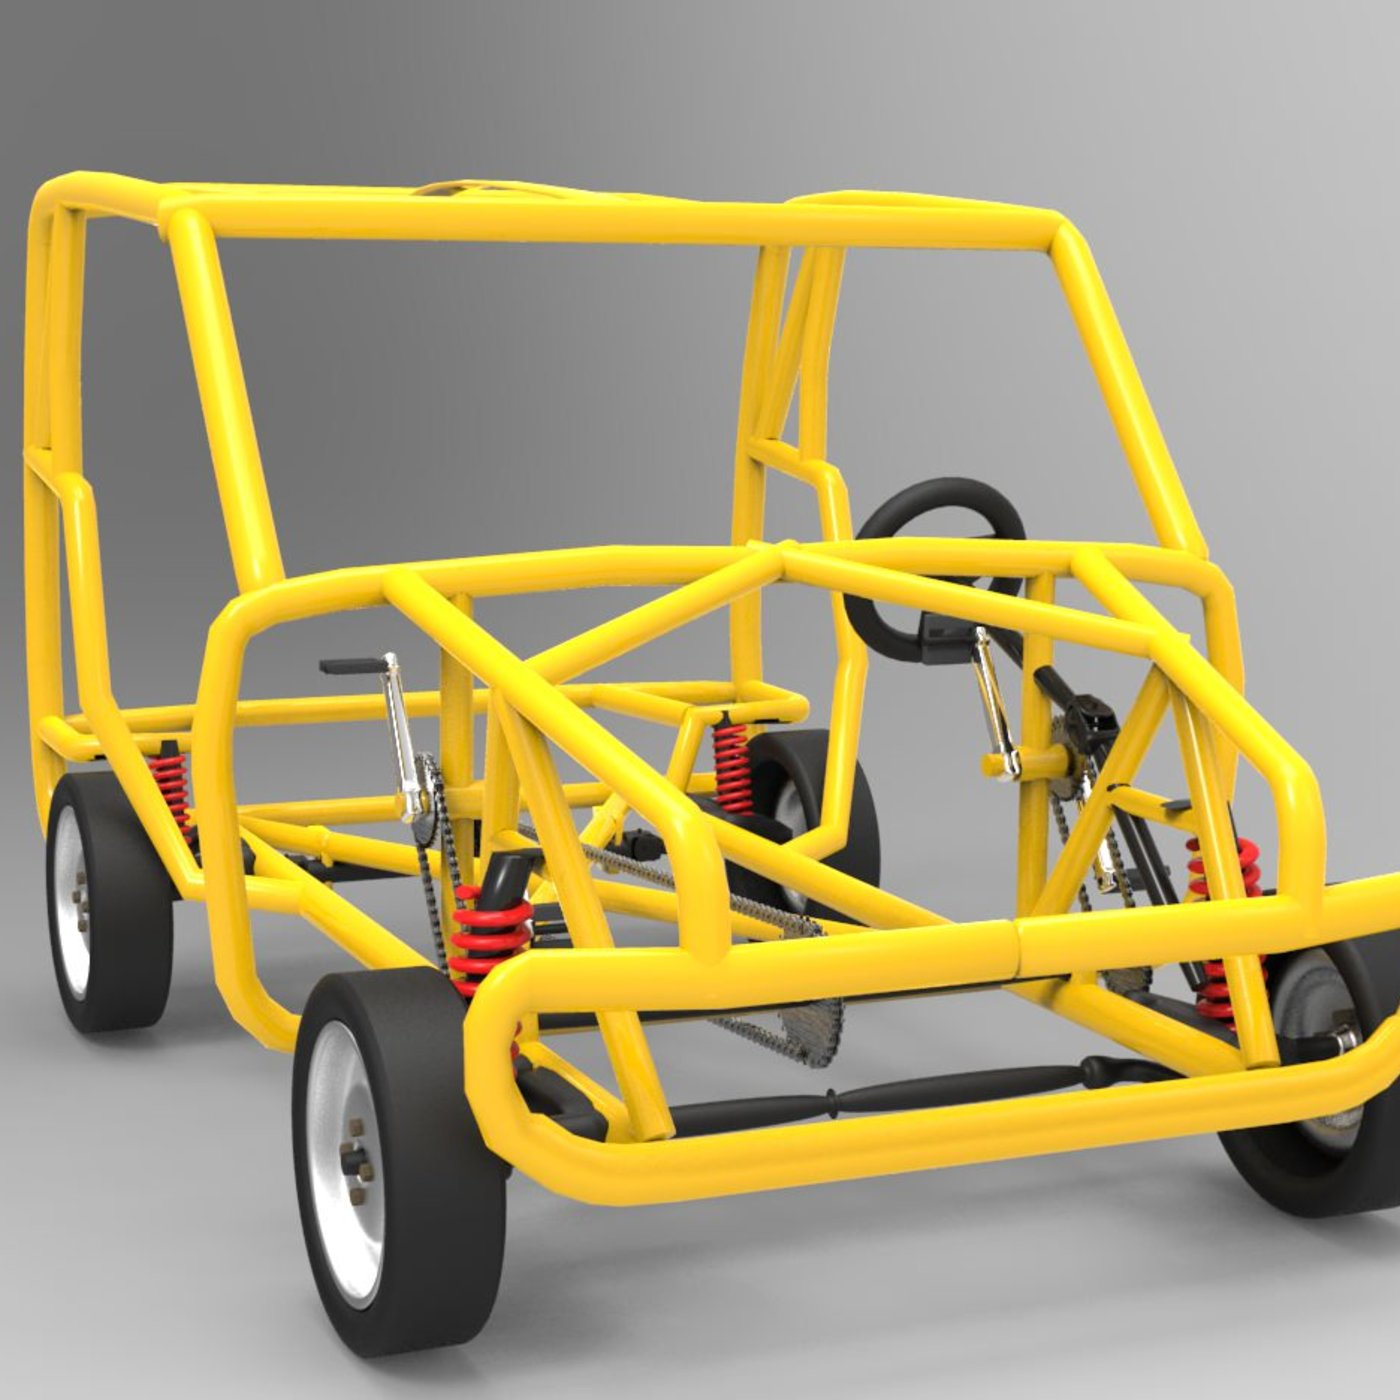 The 'Pico' human-powered car concept...!